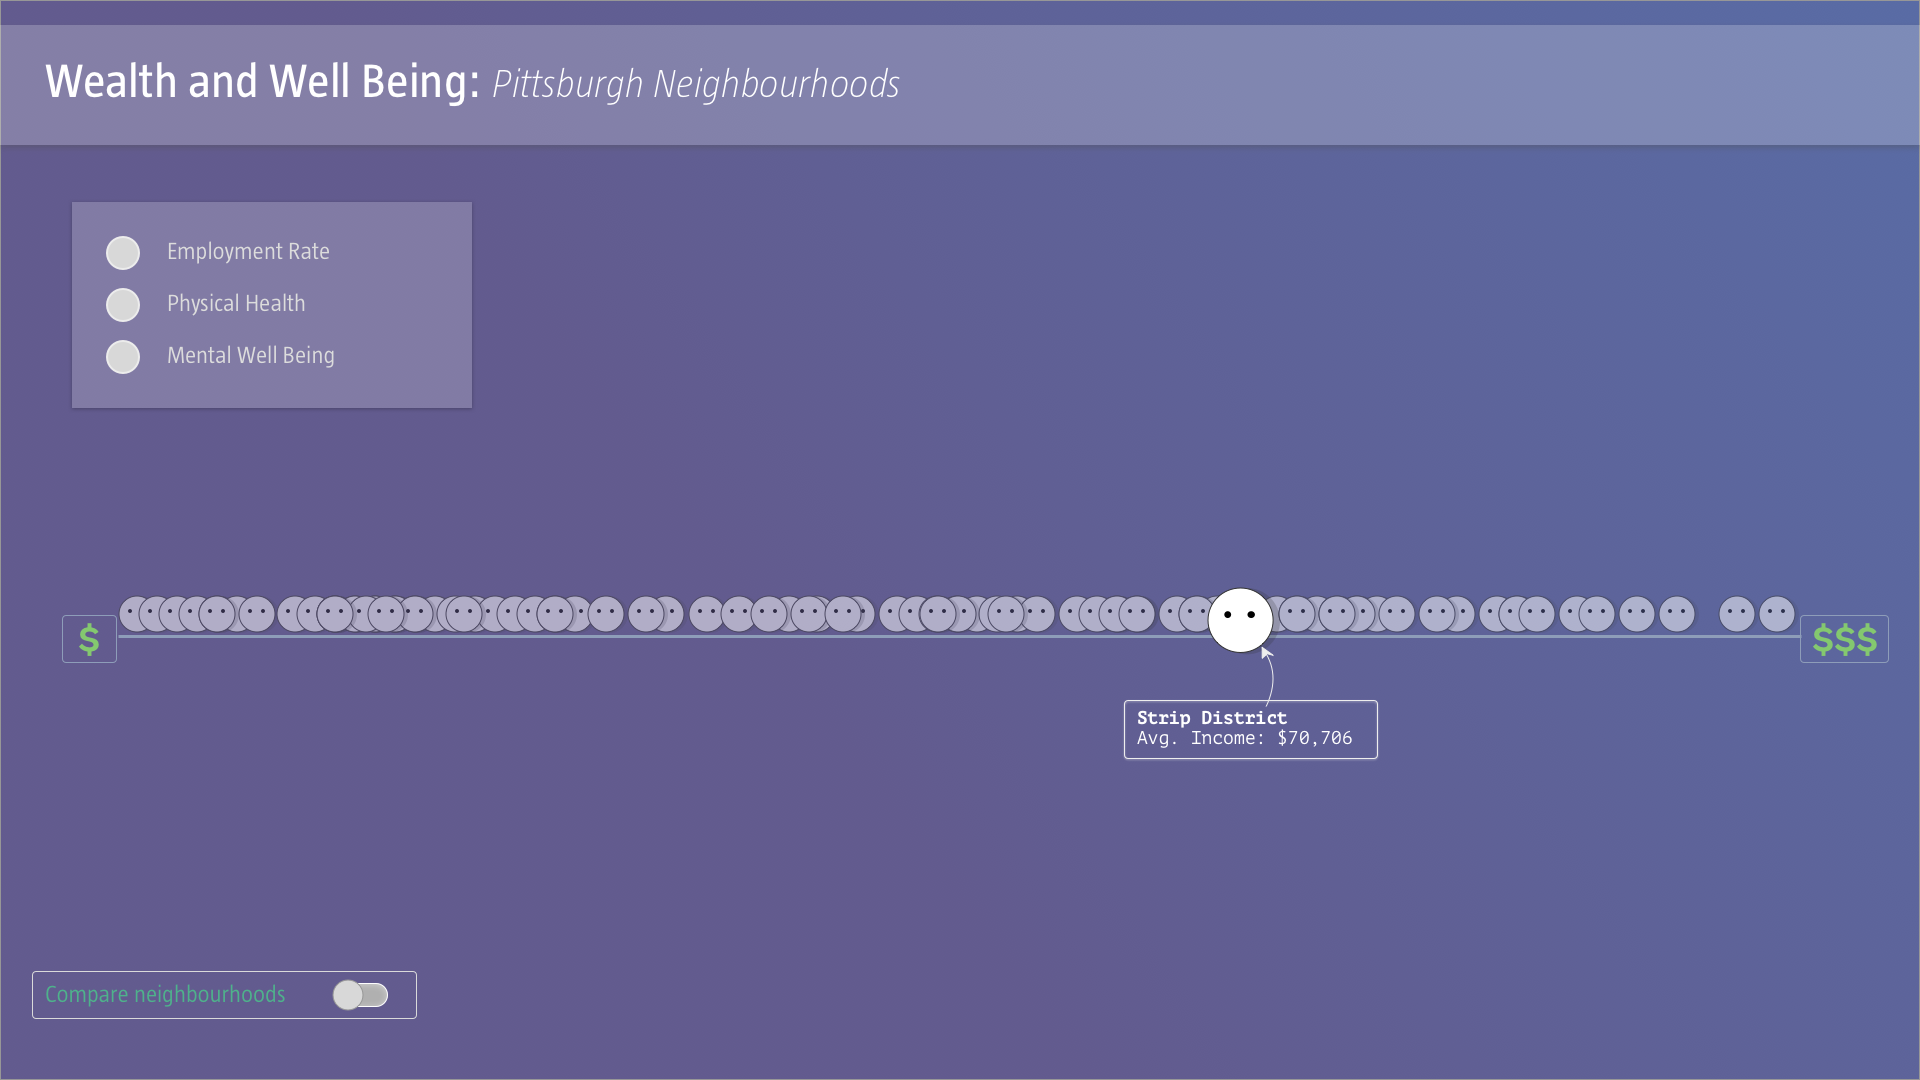 On clicking on a specific neighbourhood, one gets more details on the average income of the neighborhood.